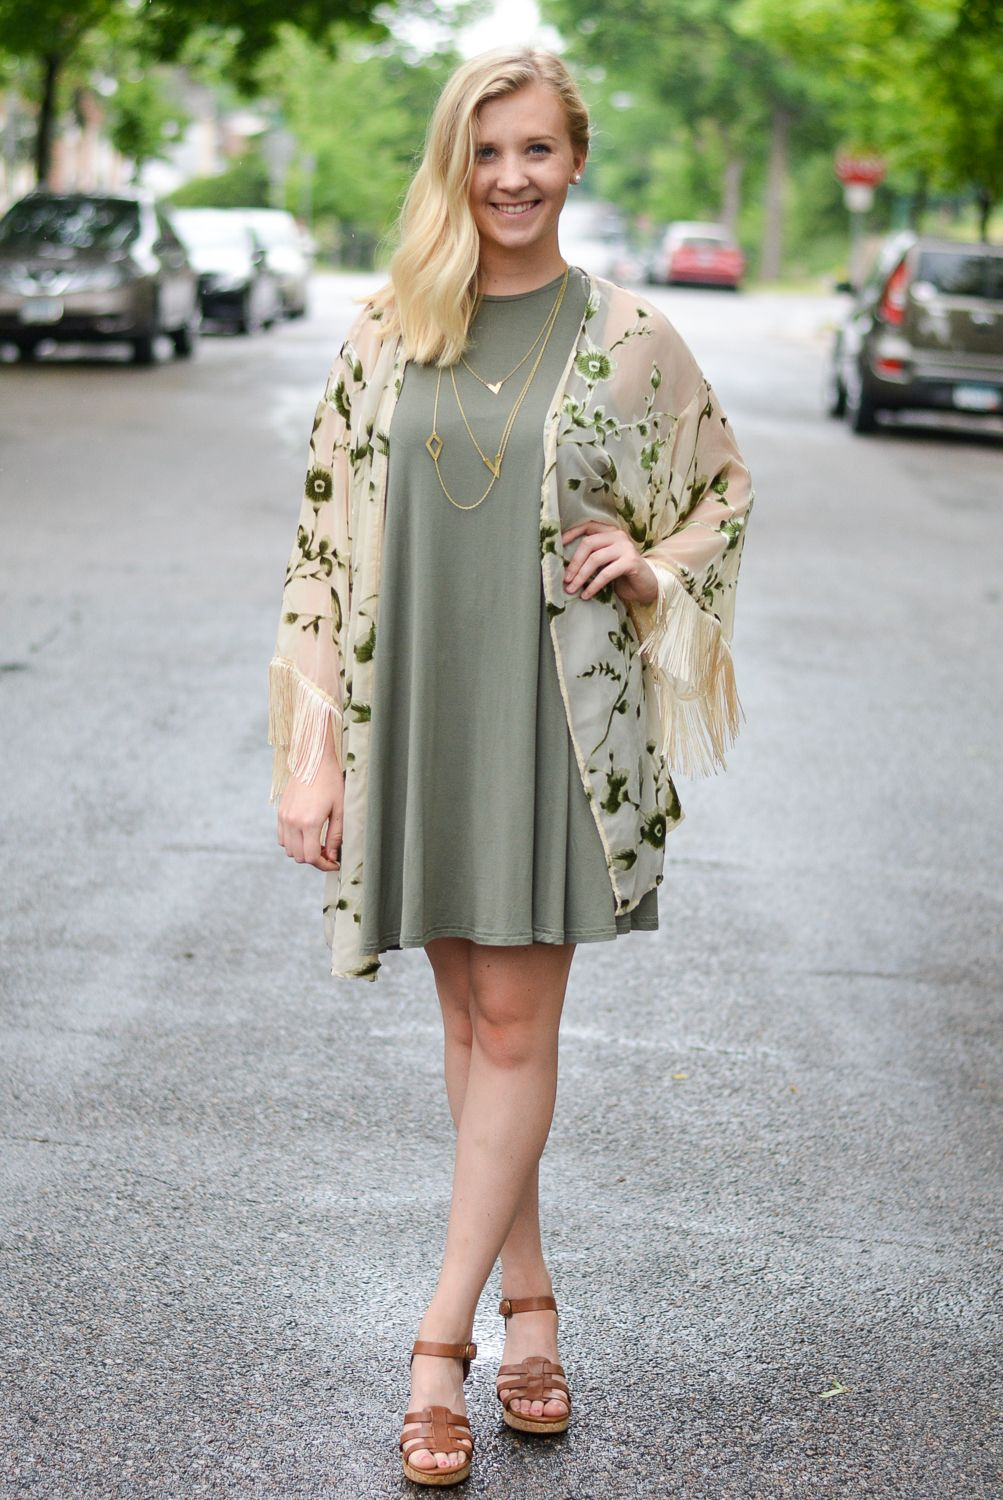 Styling a t-shirt dress for date night. Kimono and wedges! Blog - Paisley +  Sparrow 375cc89f7